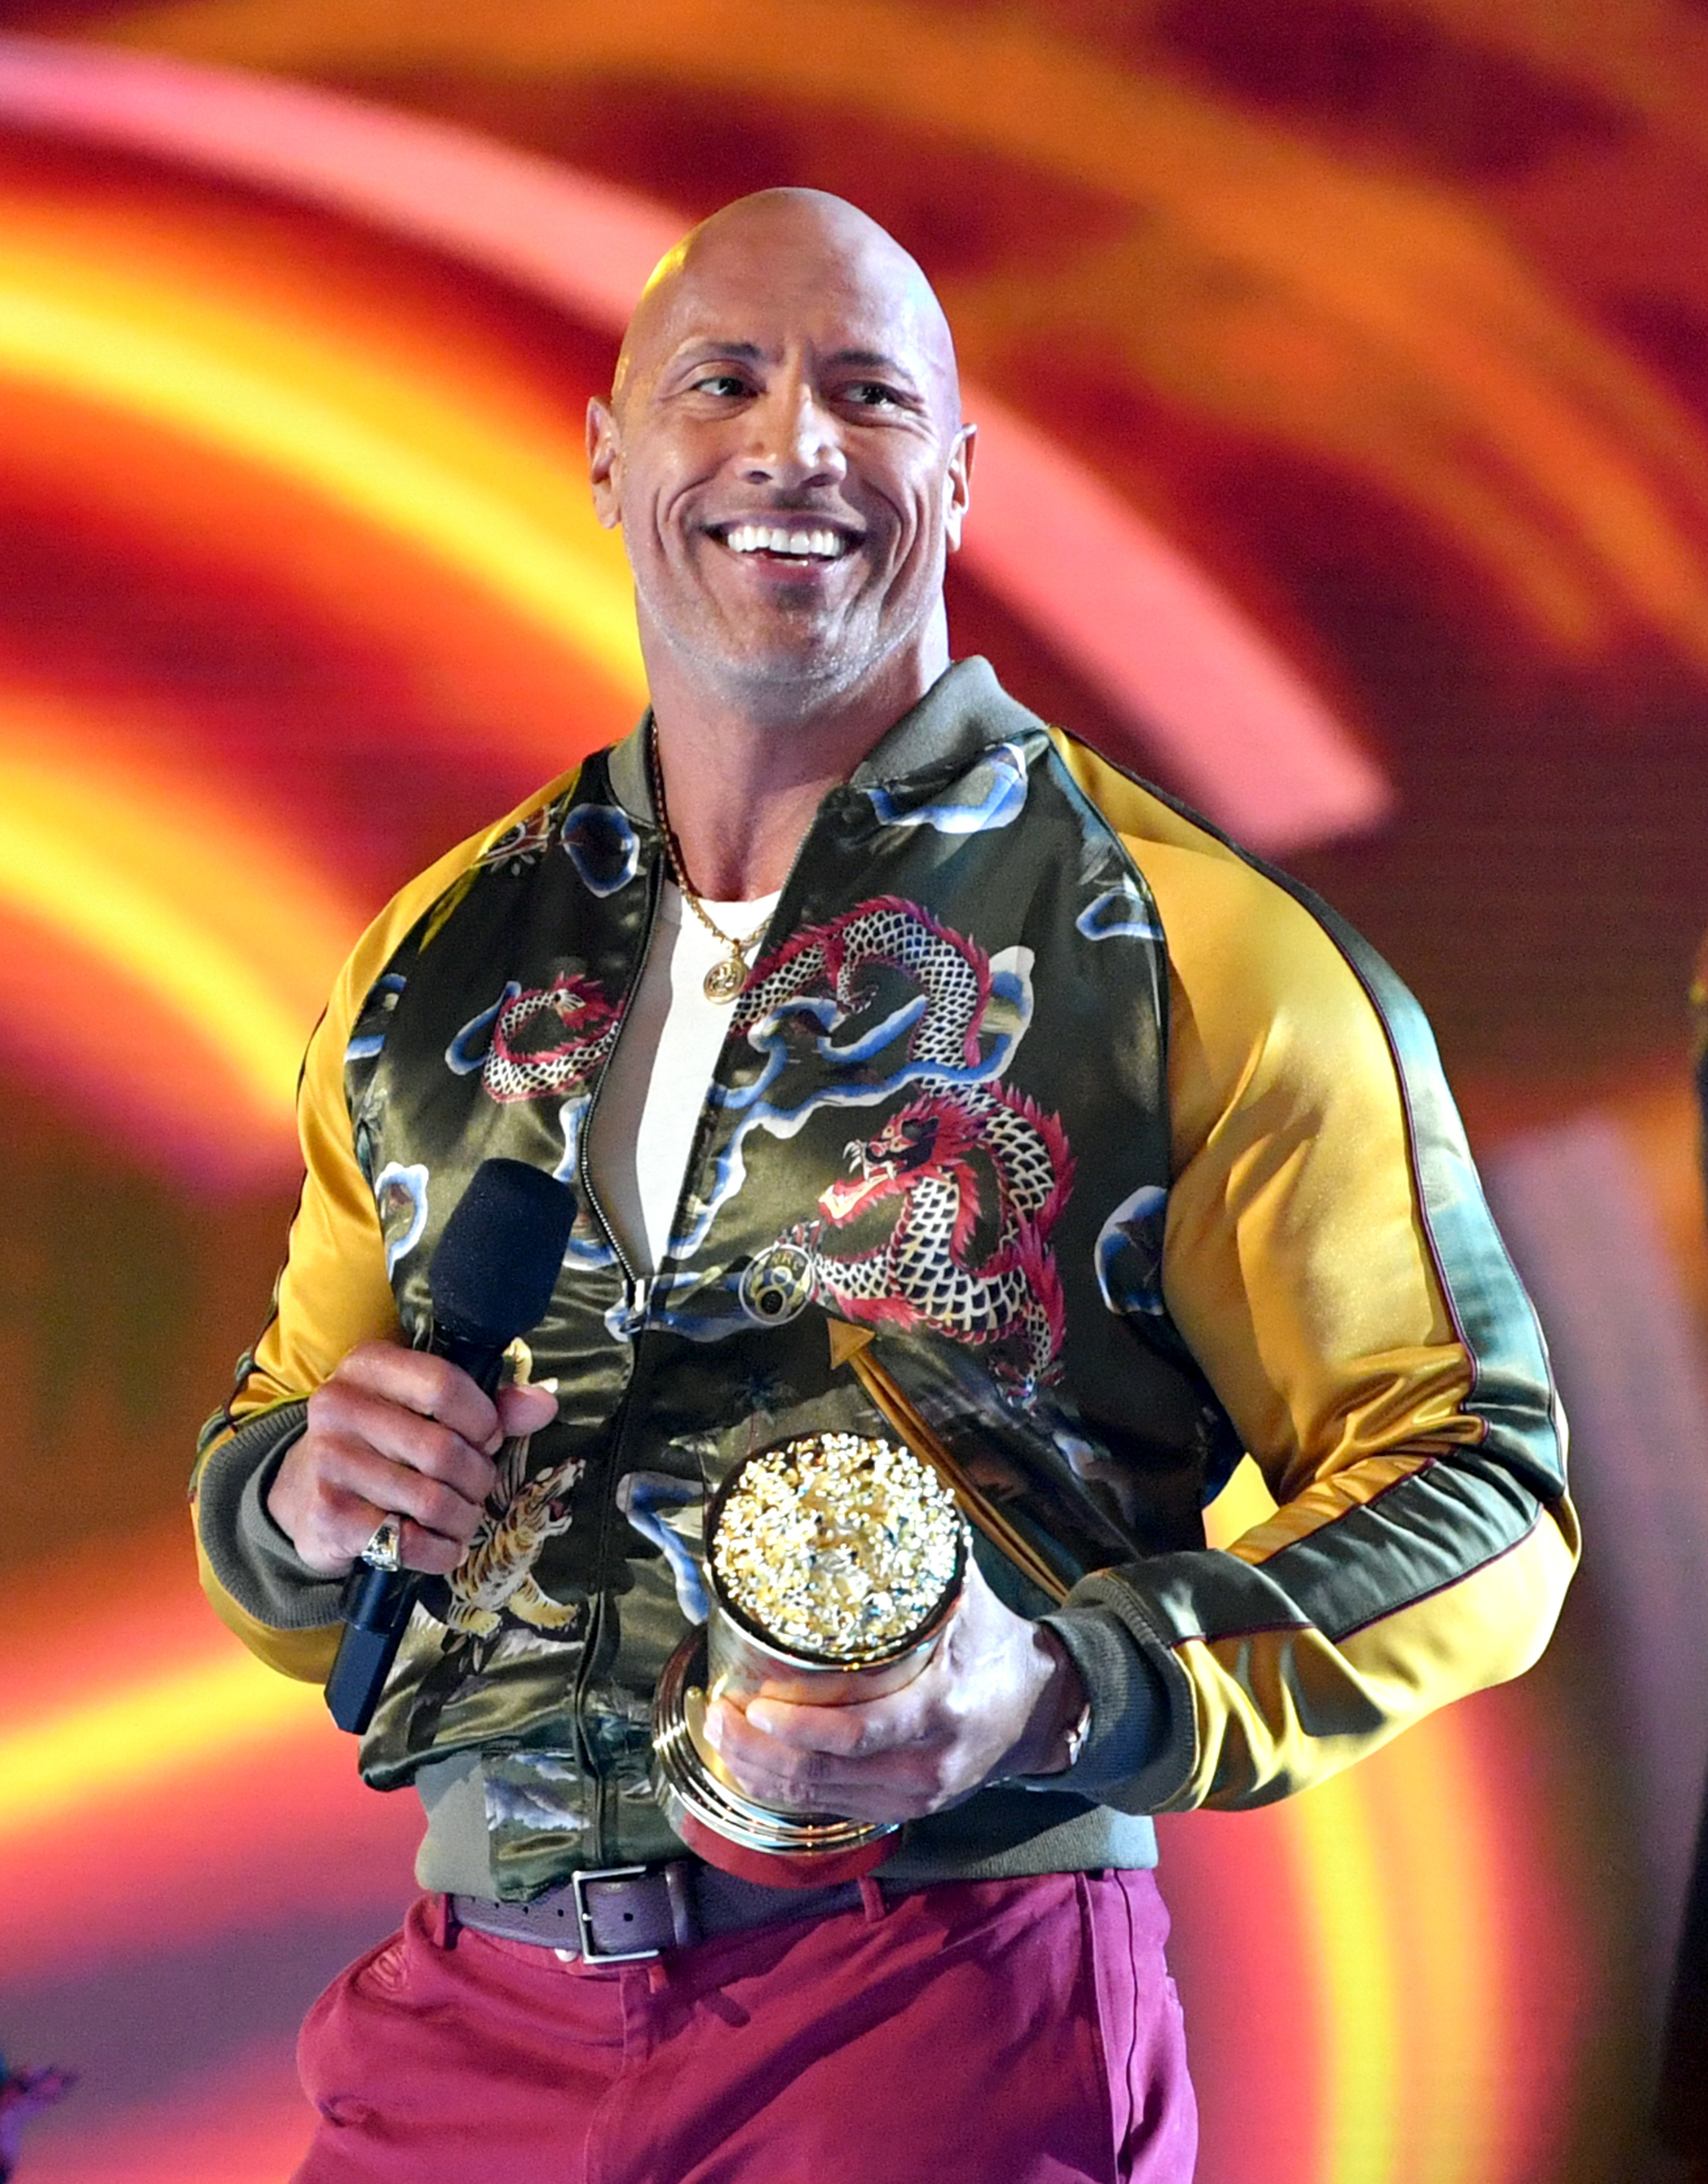 Dwayne Johnson attends the MTV Movie and TV Awards in Santa Monica, California on June 15, 2019 | Photo: Getty Images